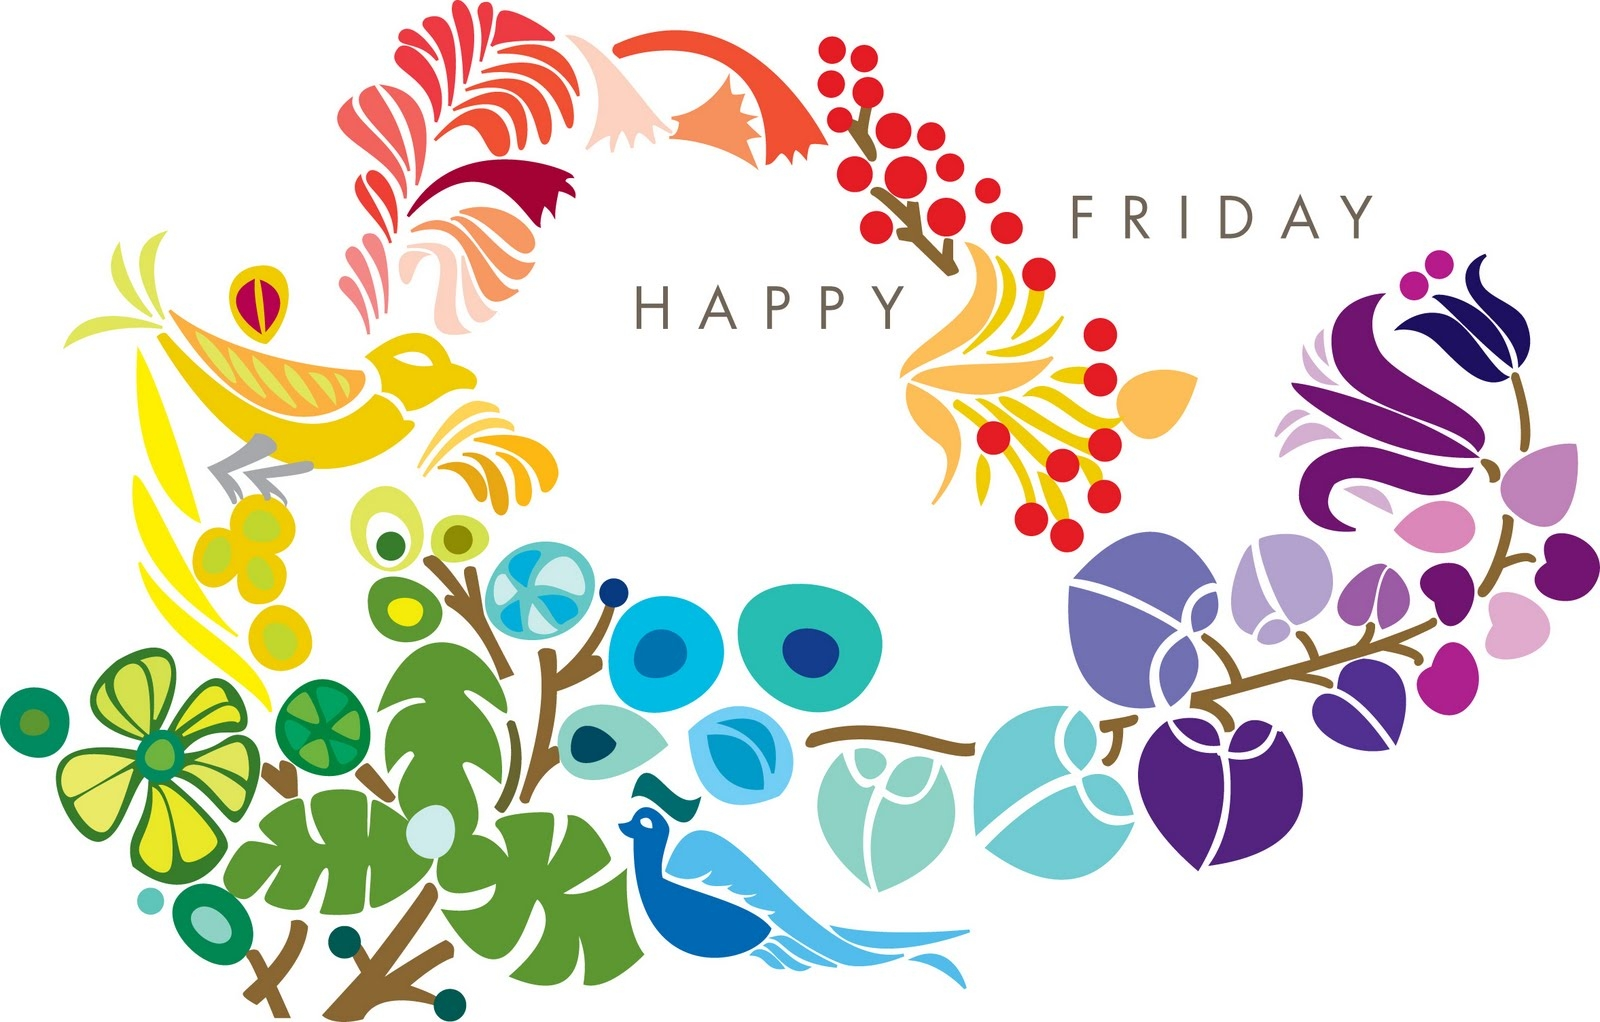 Friday clipart happy friday. Unique good gallery digital